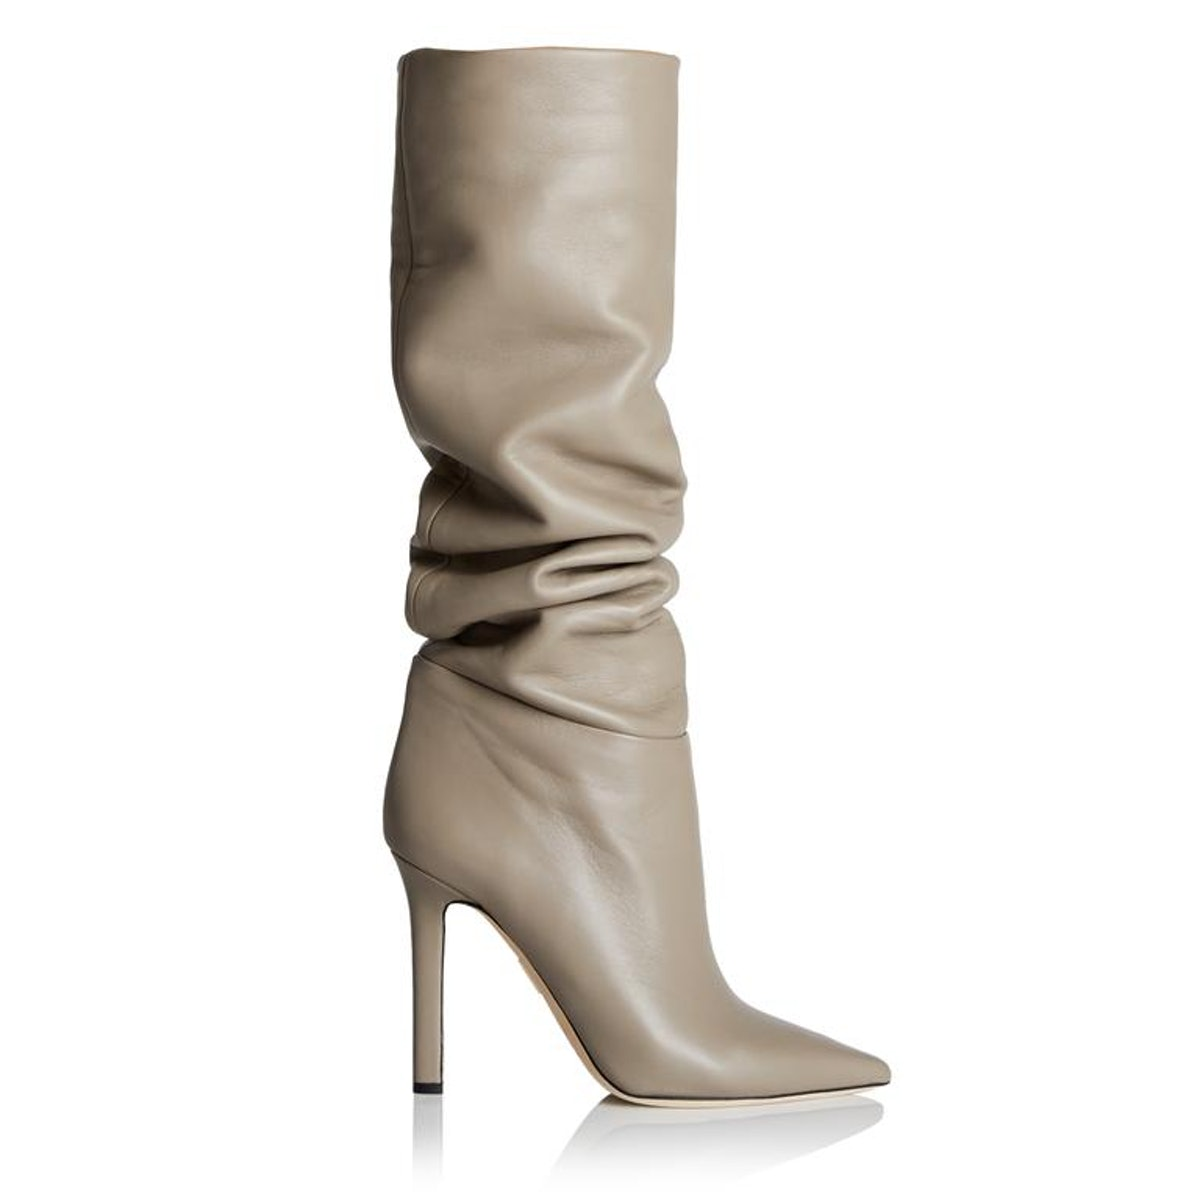 Icon Knee High Boots